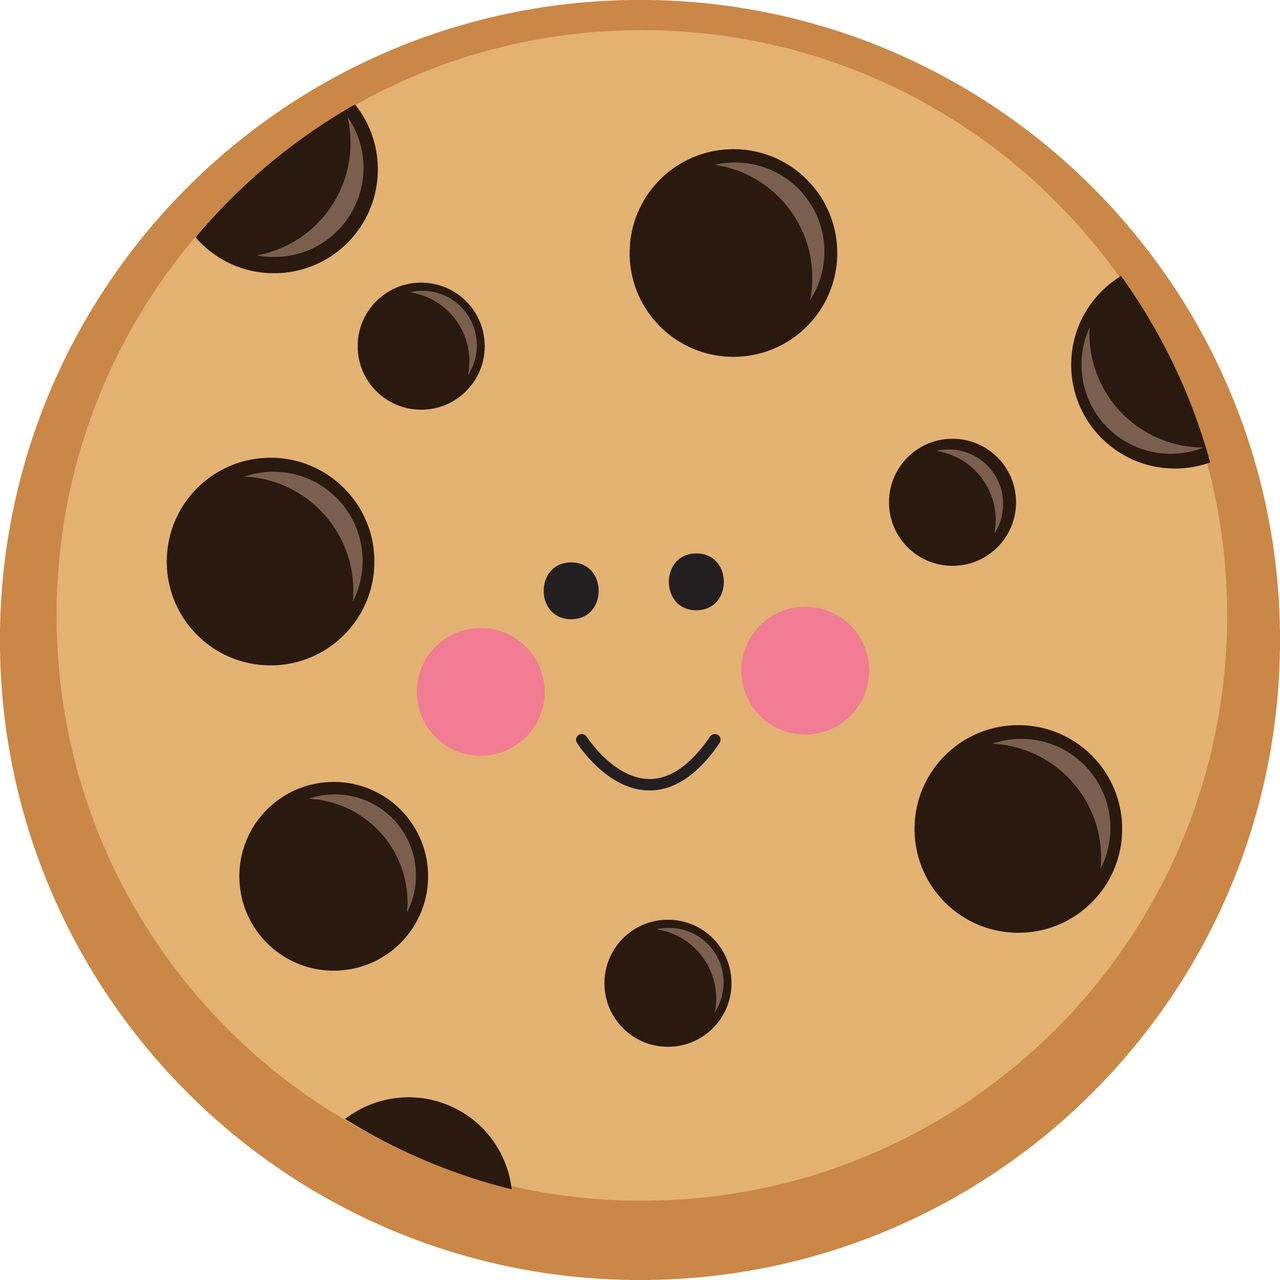 Cute Chocolate Chip Cookie (40% off for Members) - PPbN ...